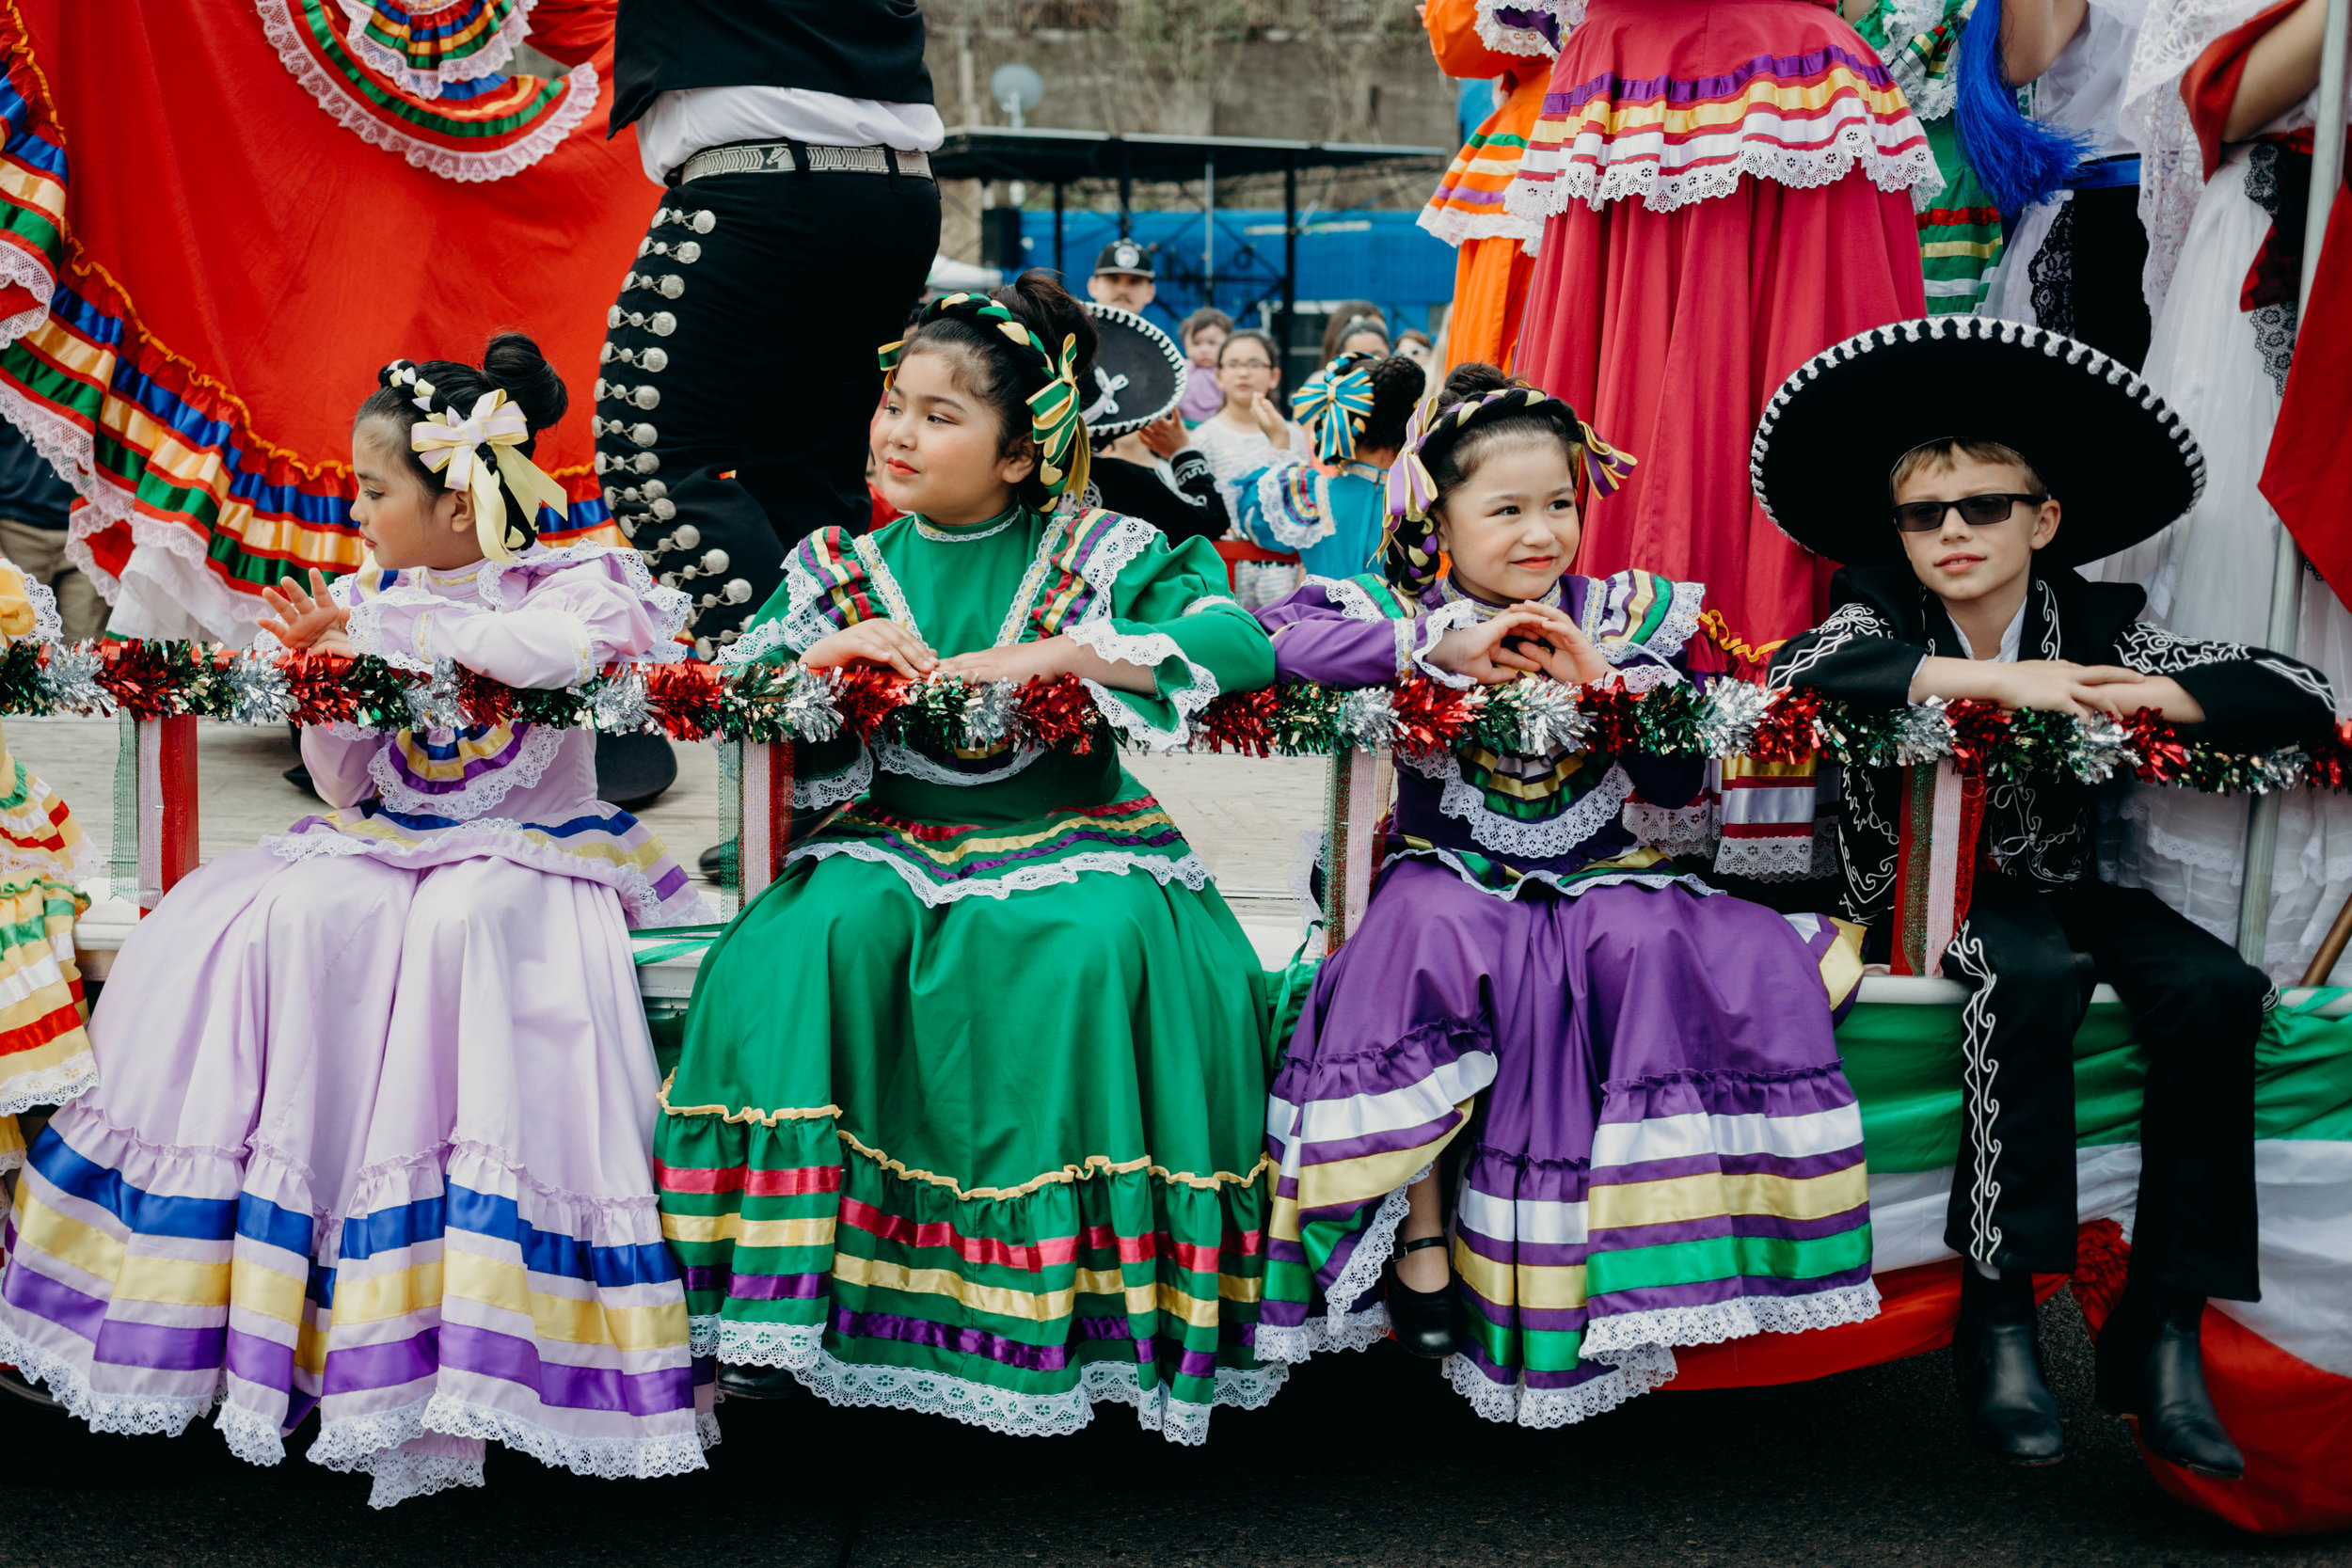 These days the US Mexican Americans celebrate their culture on Cinco de Mayo - The bright colors and excellent food and drink make this holiday a jubilant for all who partake.